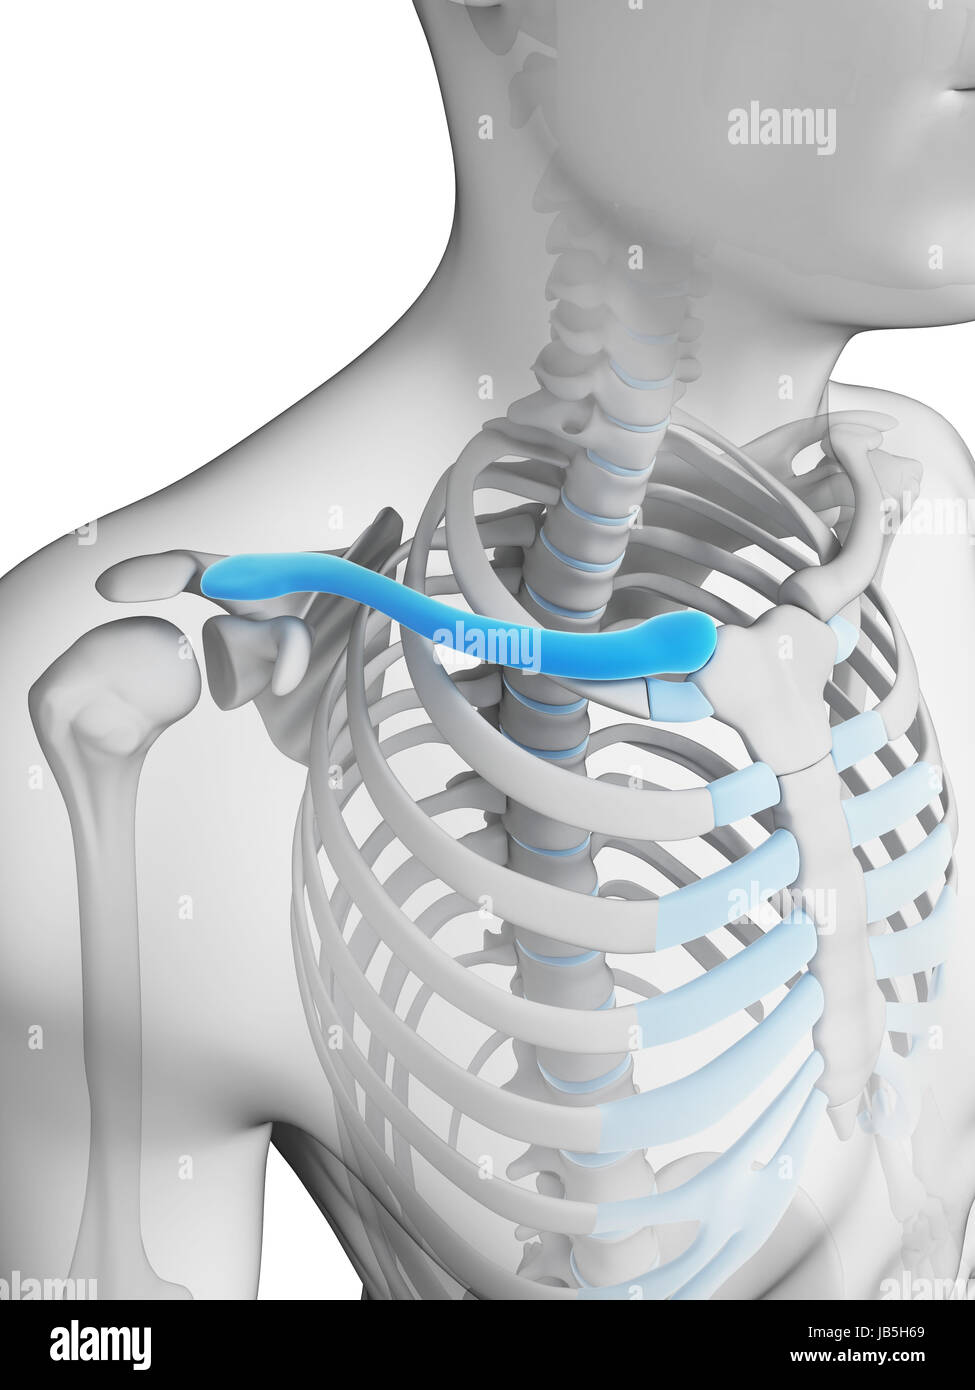 Clavicle Stock Photos Clavicle Stock Images Alamy